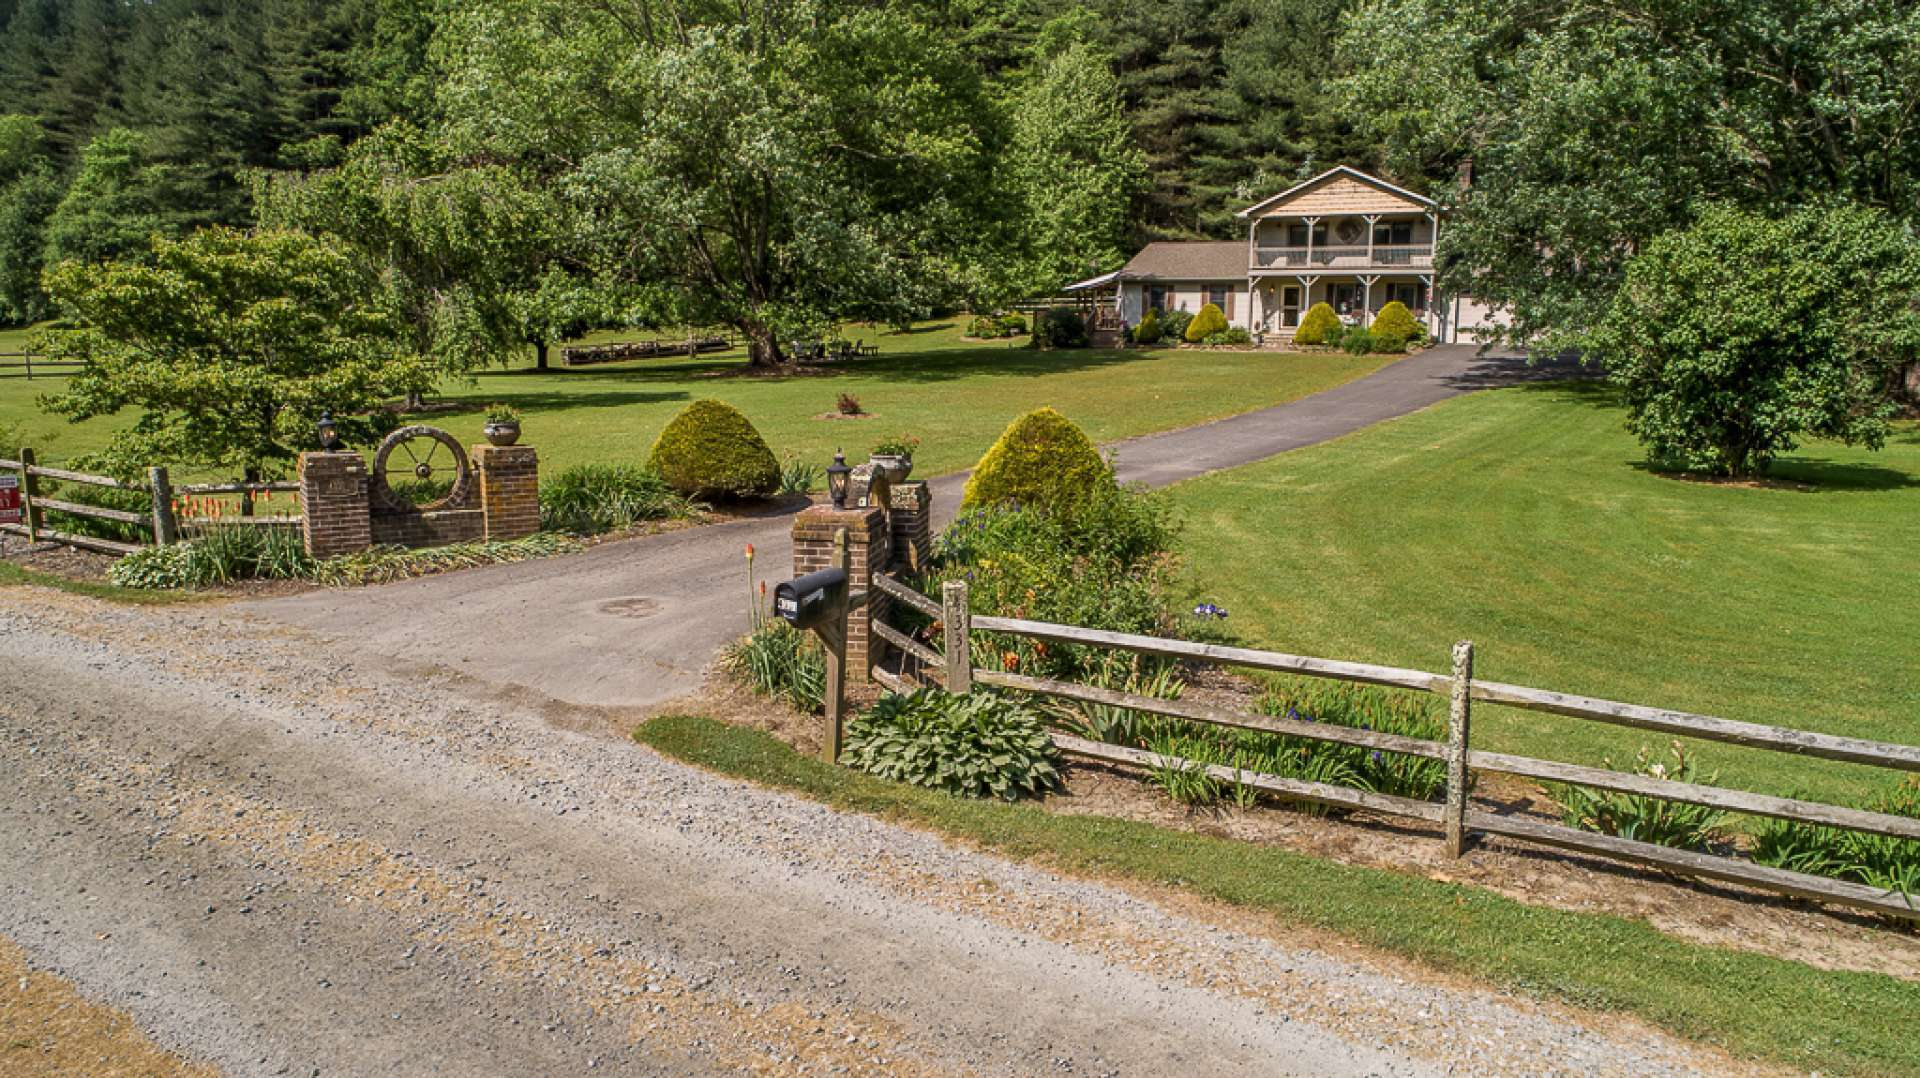 Nestled among this pristine setting is a spacious remodeled 4-bedroom, 2-bath country home accessed via a private drive.